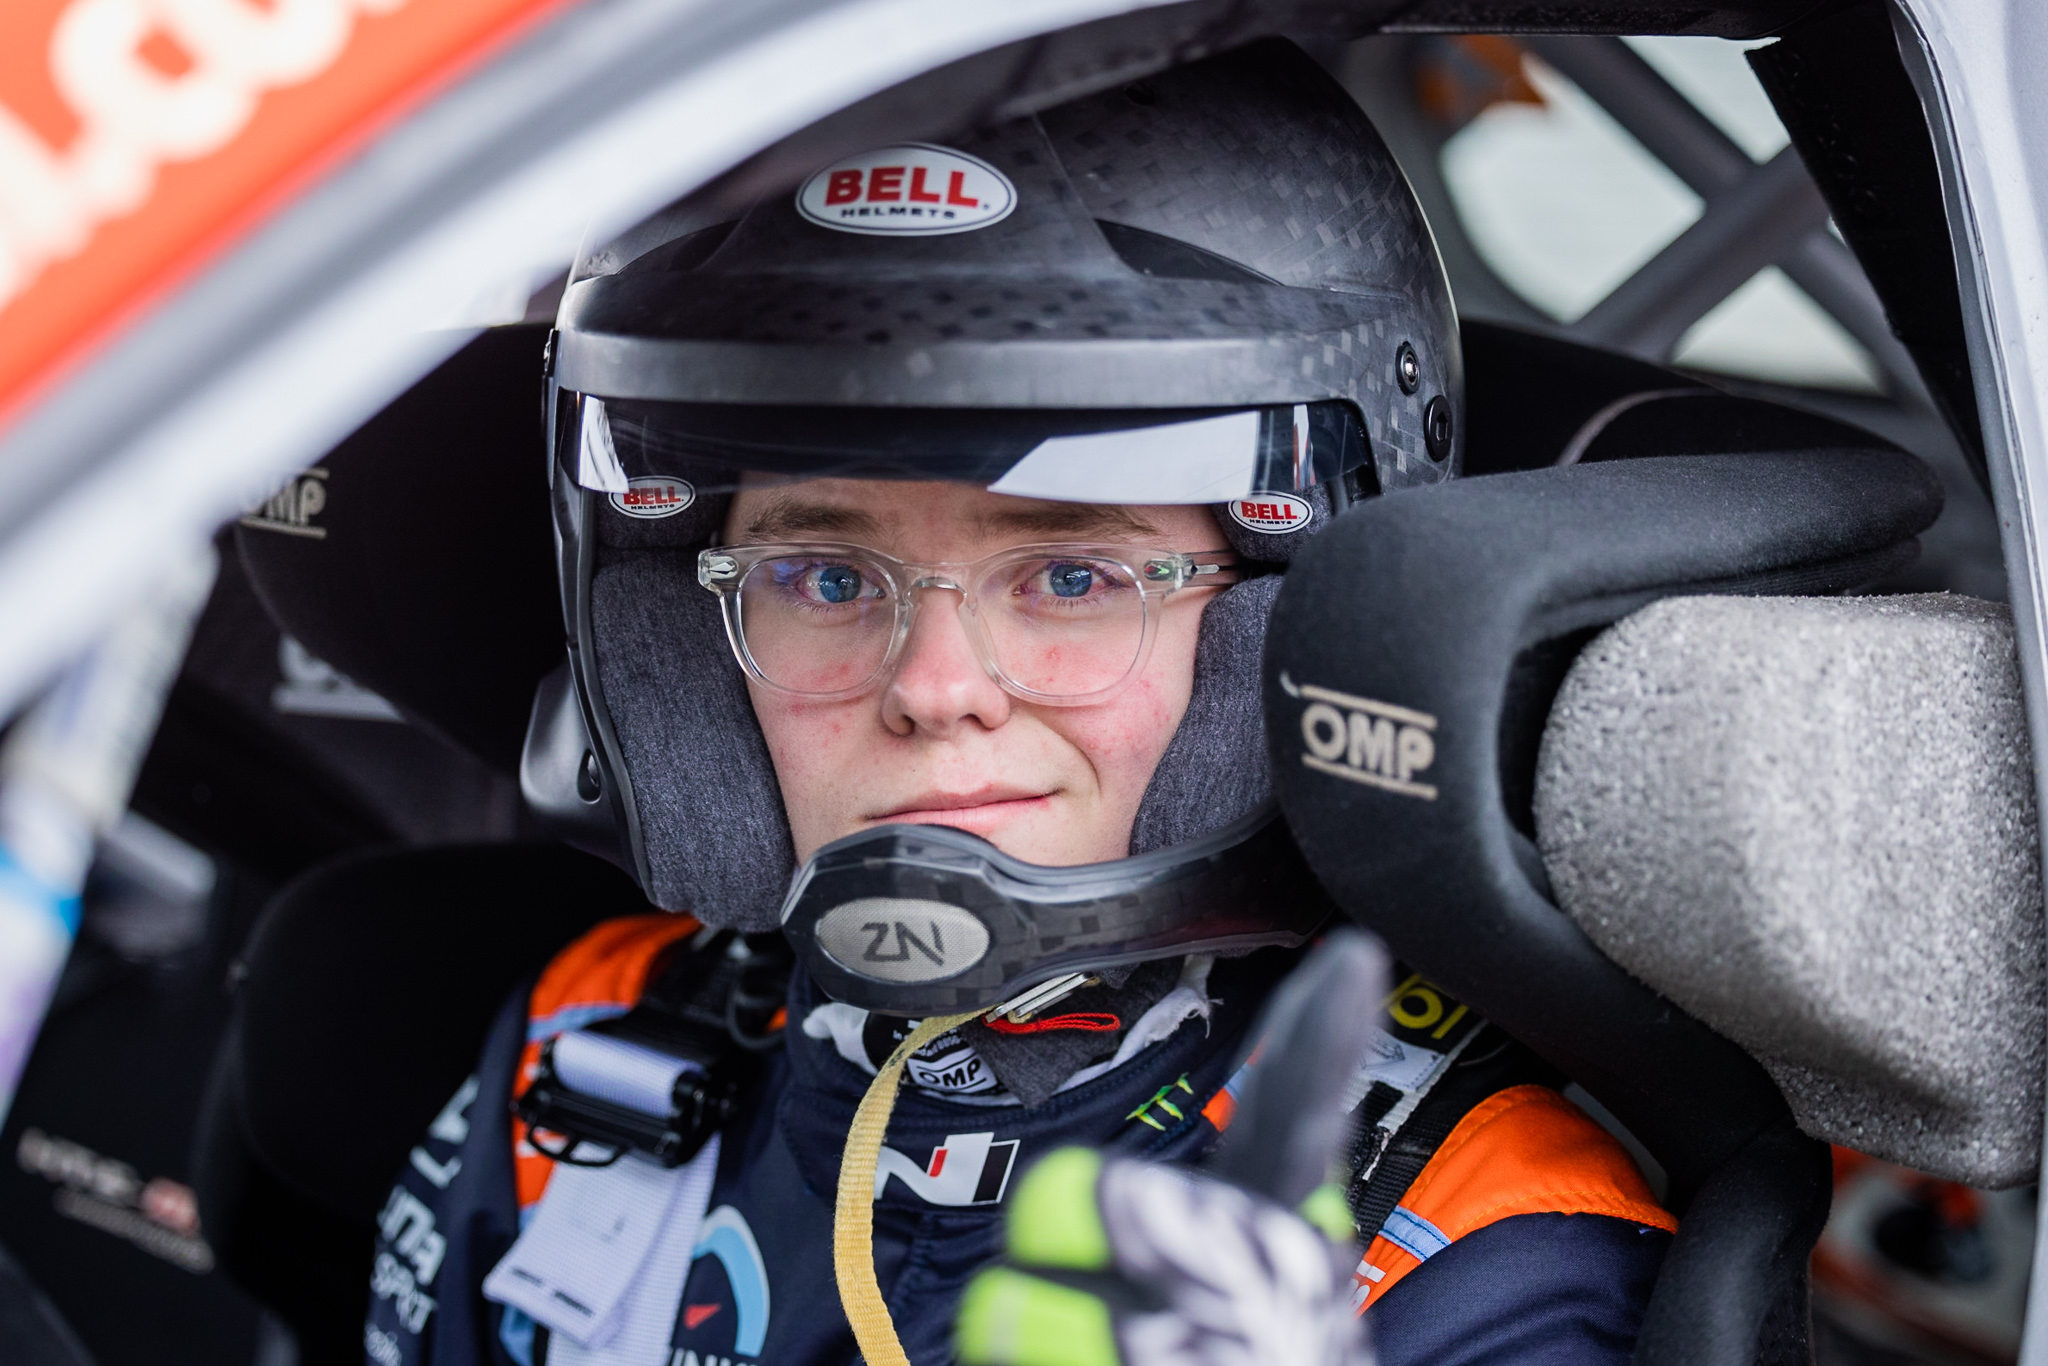 WRC: Teenager Oliver Solberg to make debut with Hyundai